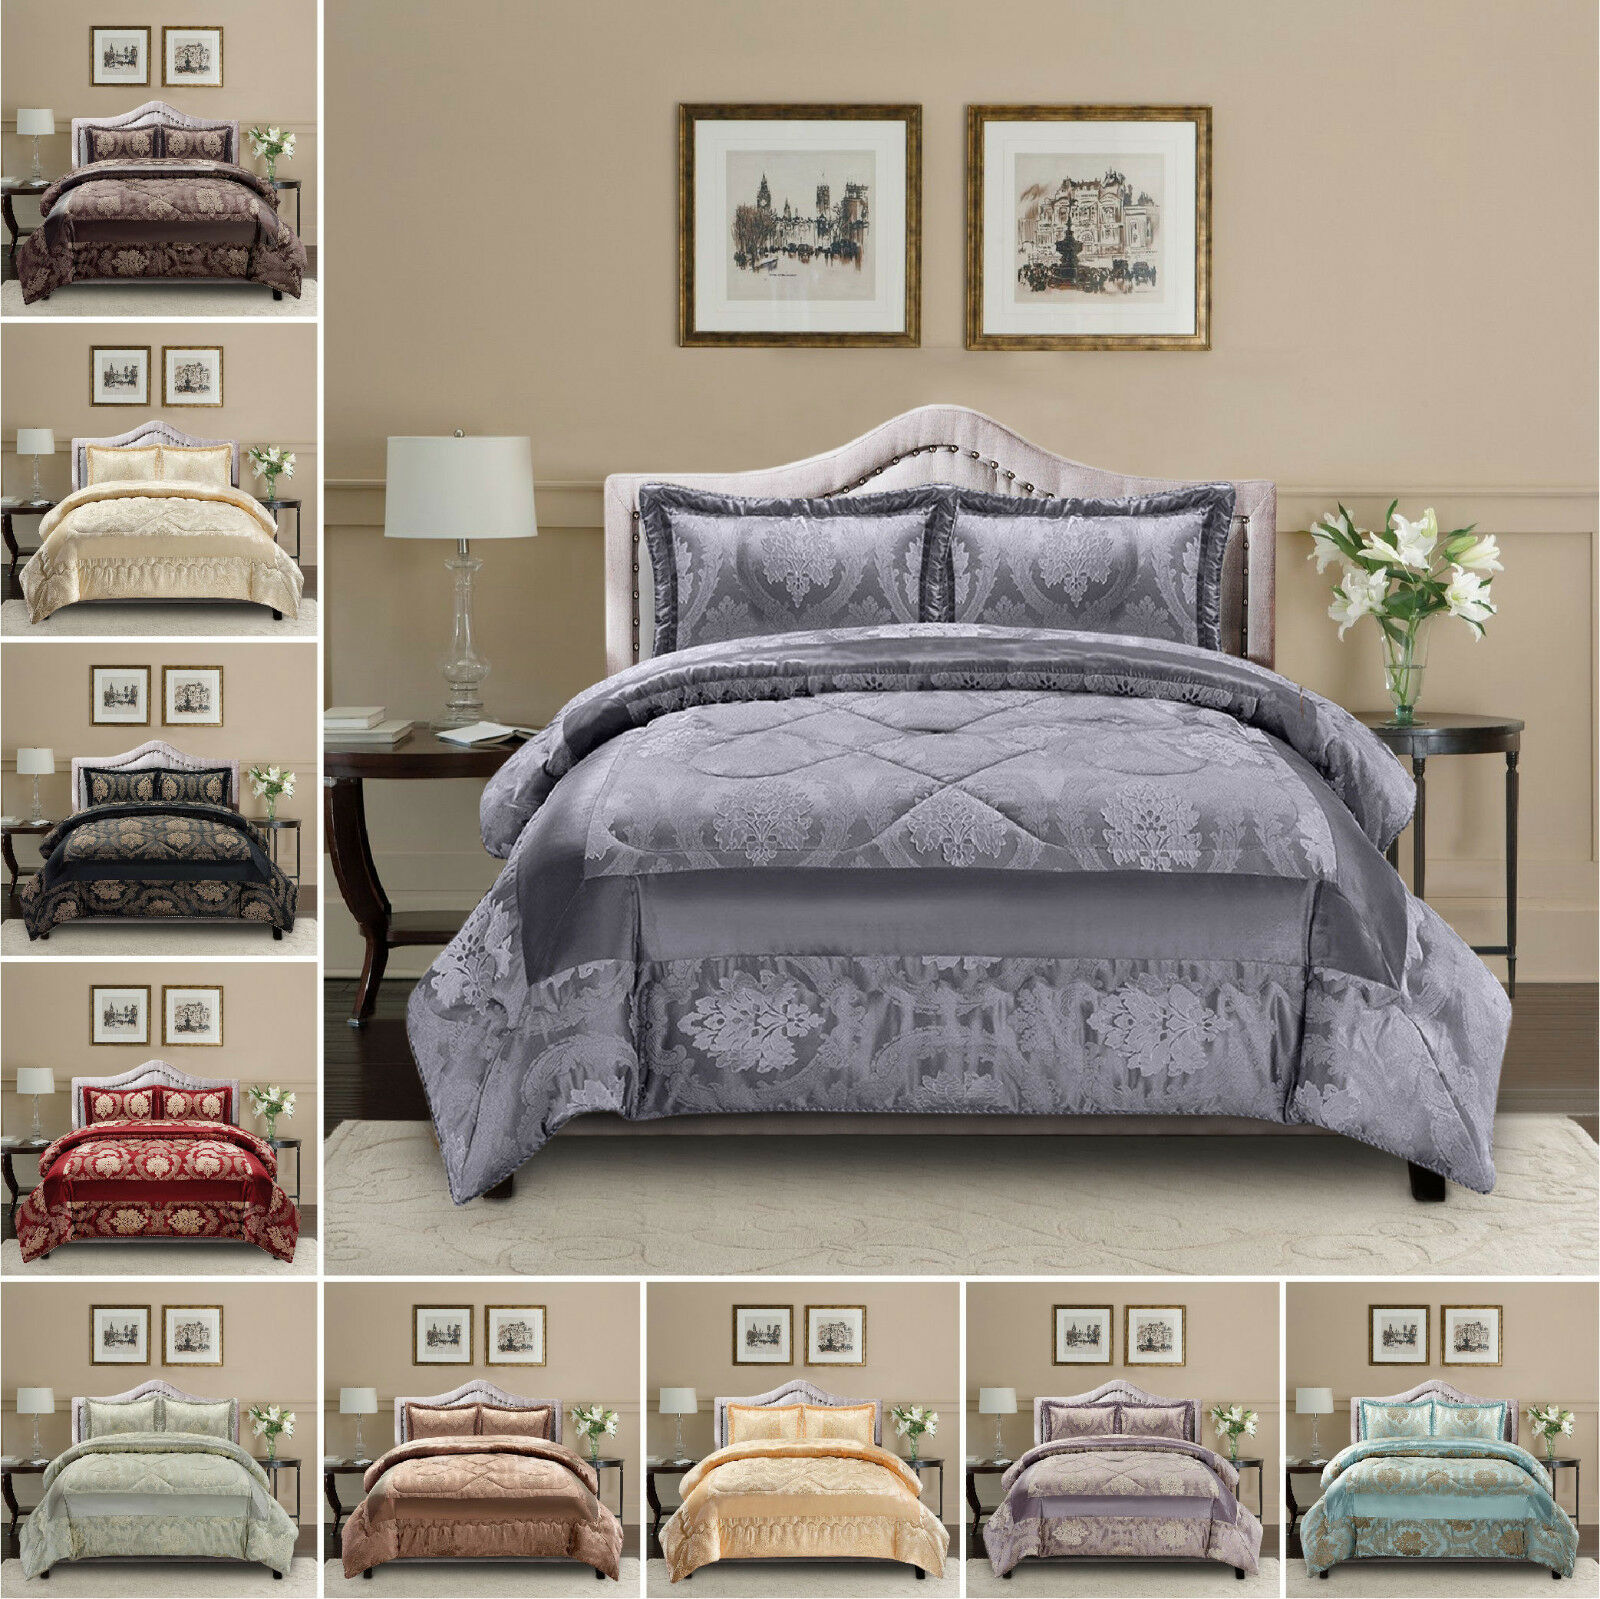 3 Piece Quilted Bedspread Set Bed Throw Comforter Double King Super King Size